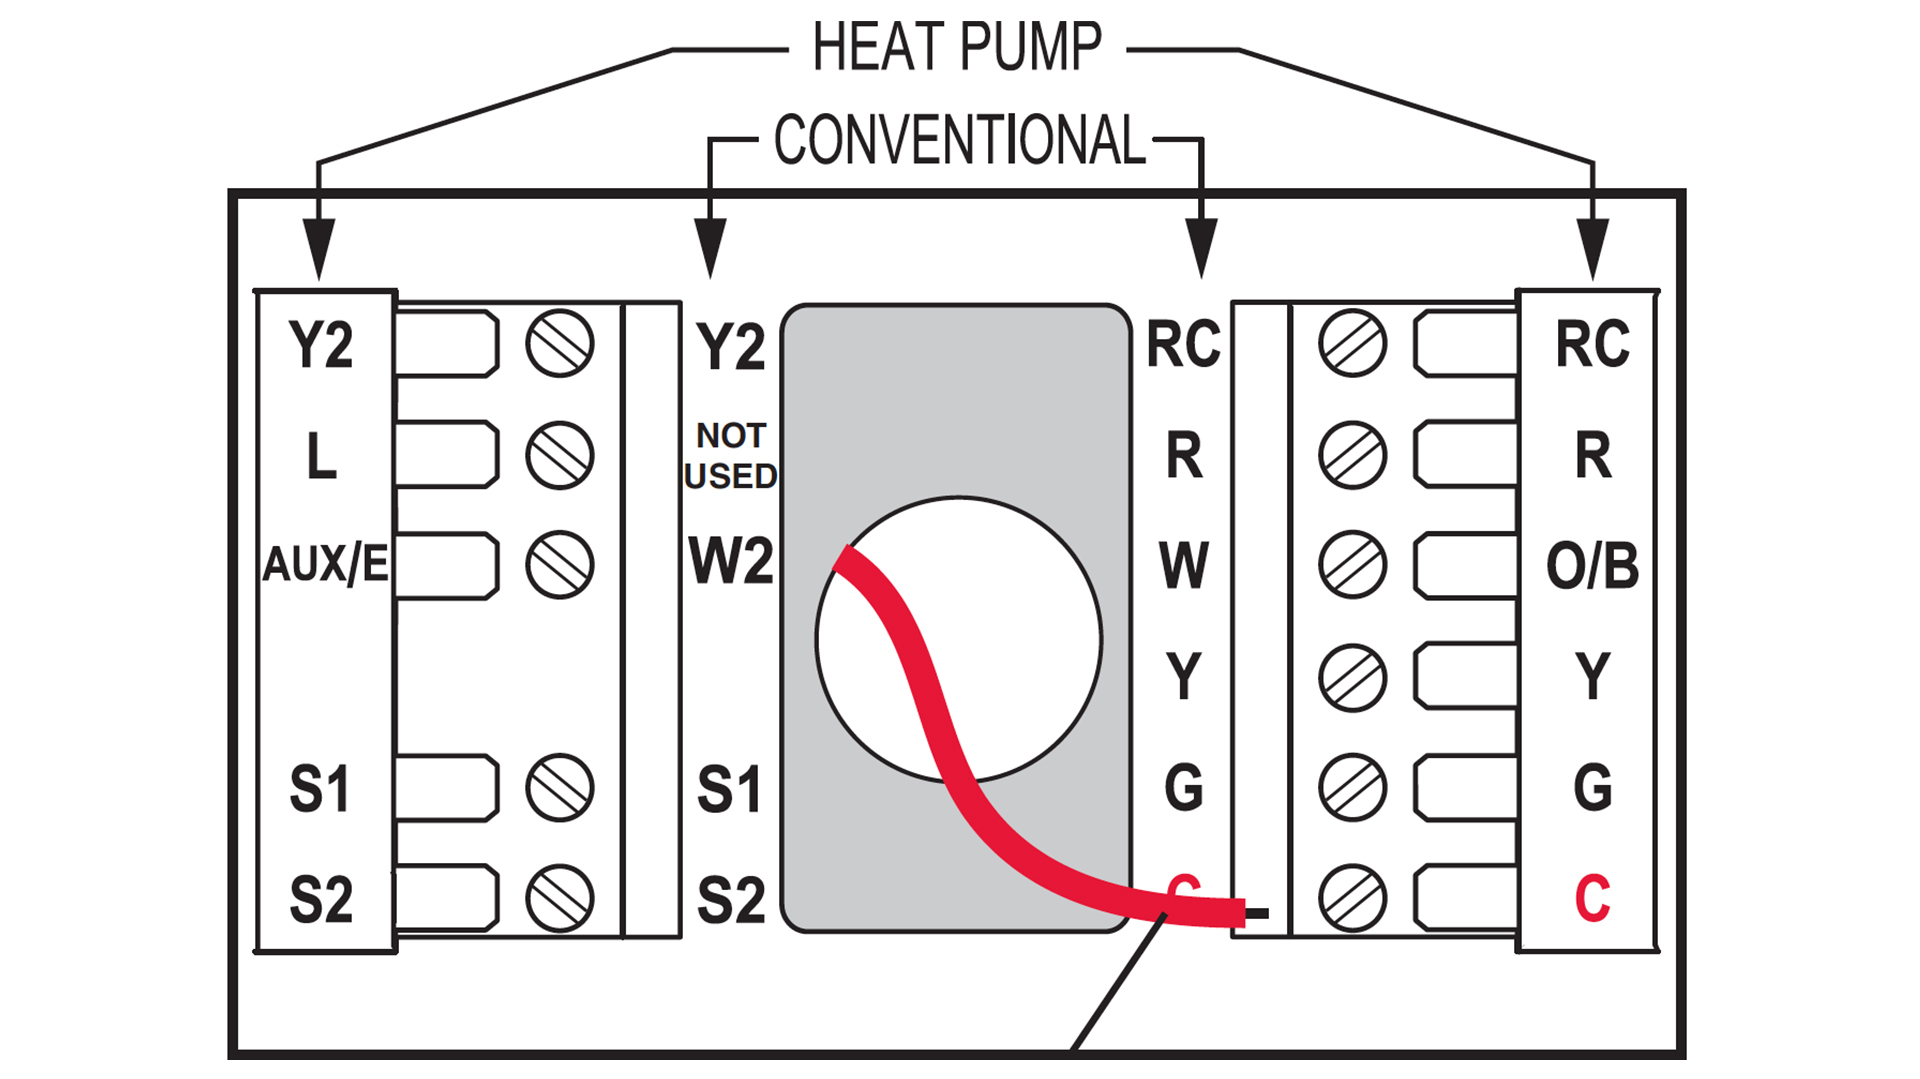 Old Furnace Wiring | Wiring Library - Furnace Thermostat Wiring Diagram